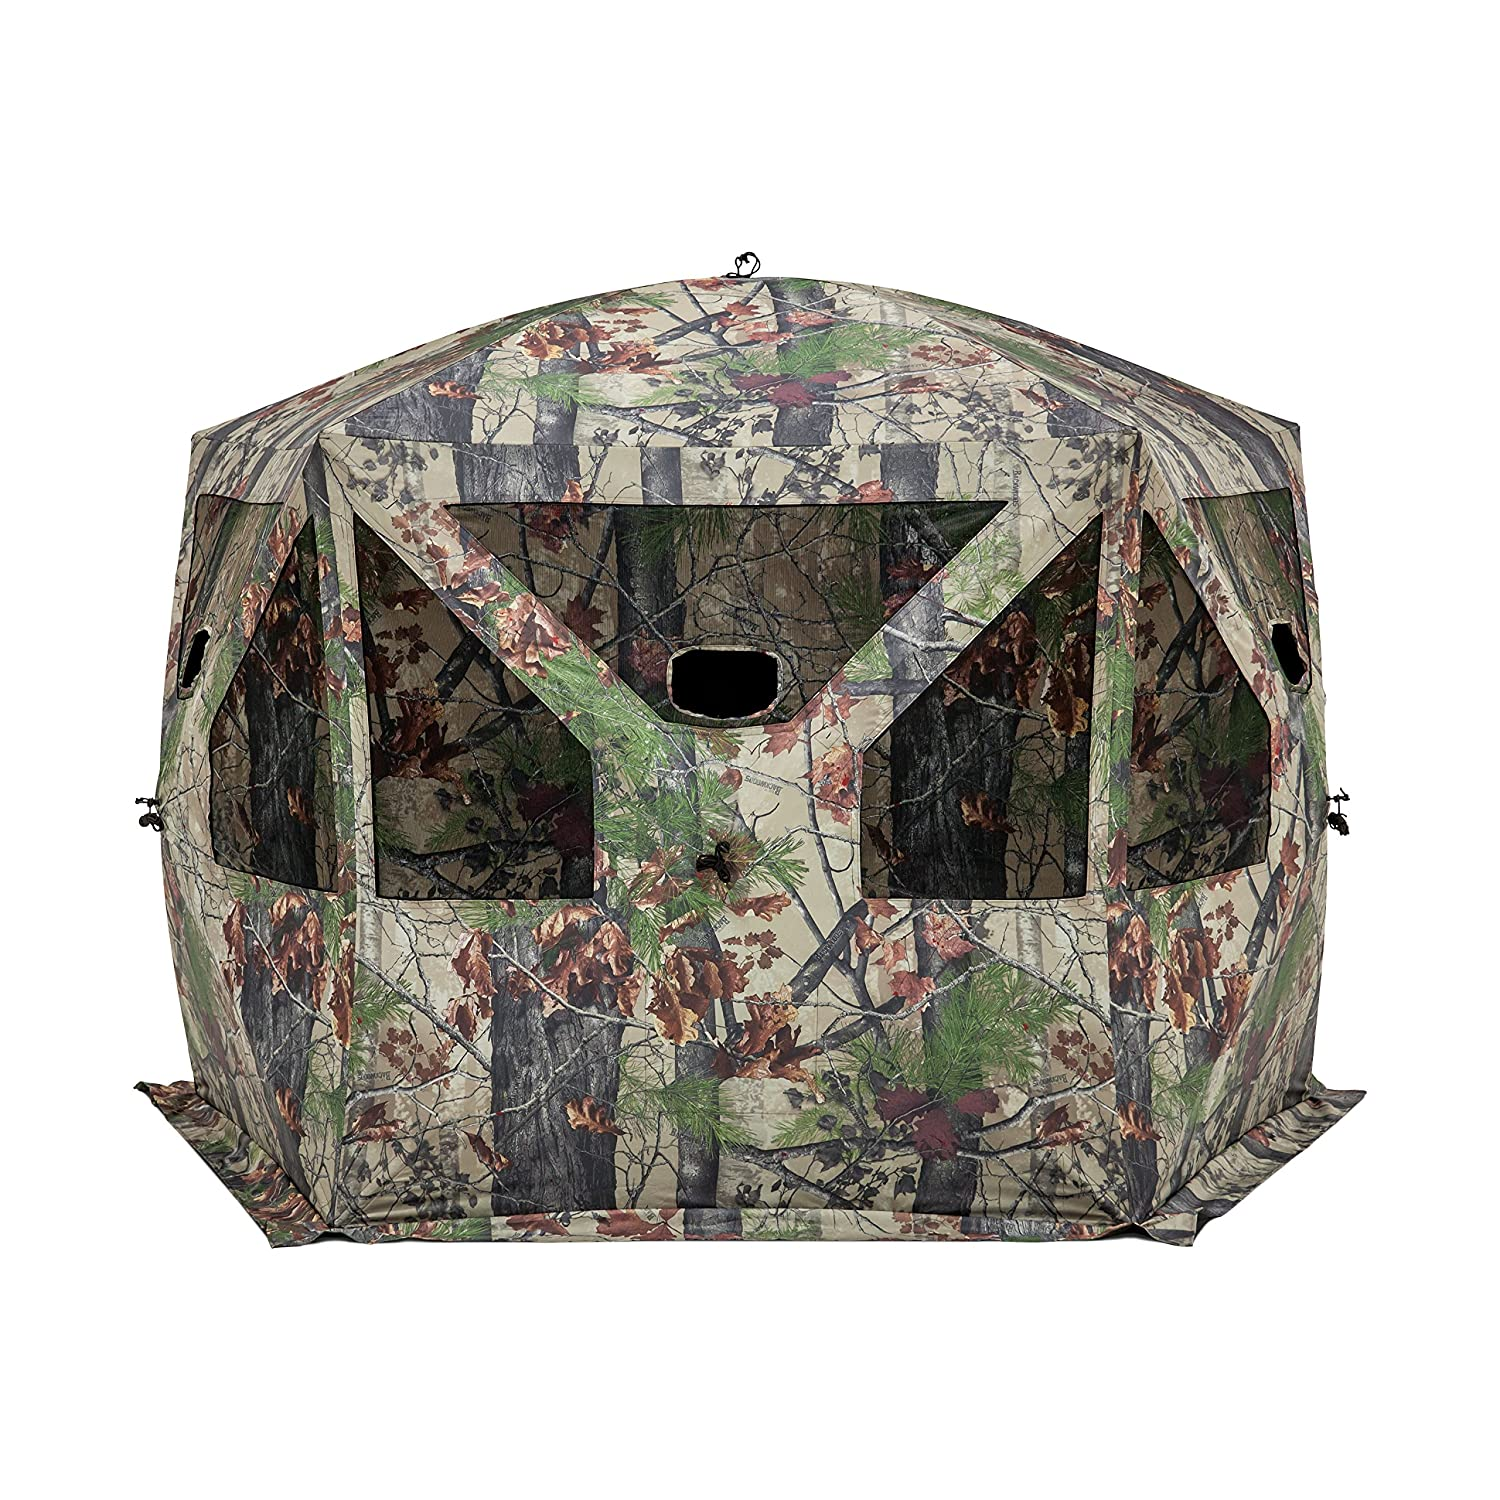 hunting blind man person design game stand ladder blinds s item ebay mesh p seats rivers v bowman two edge shaped